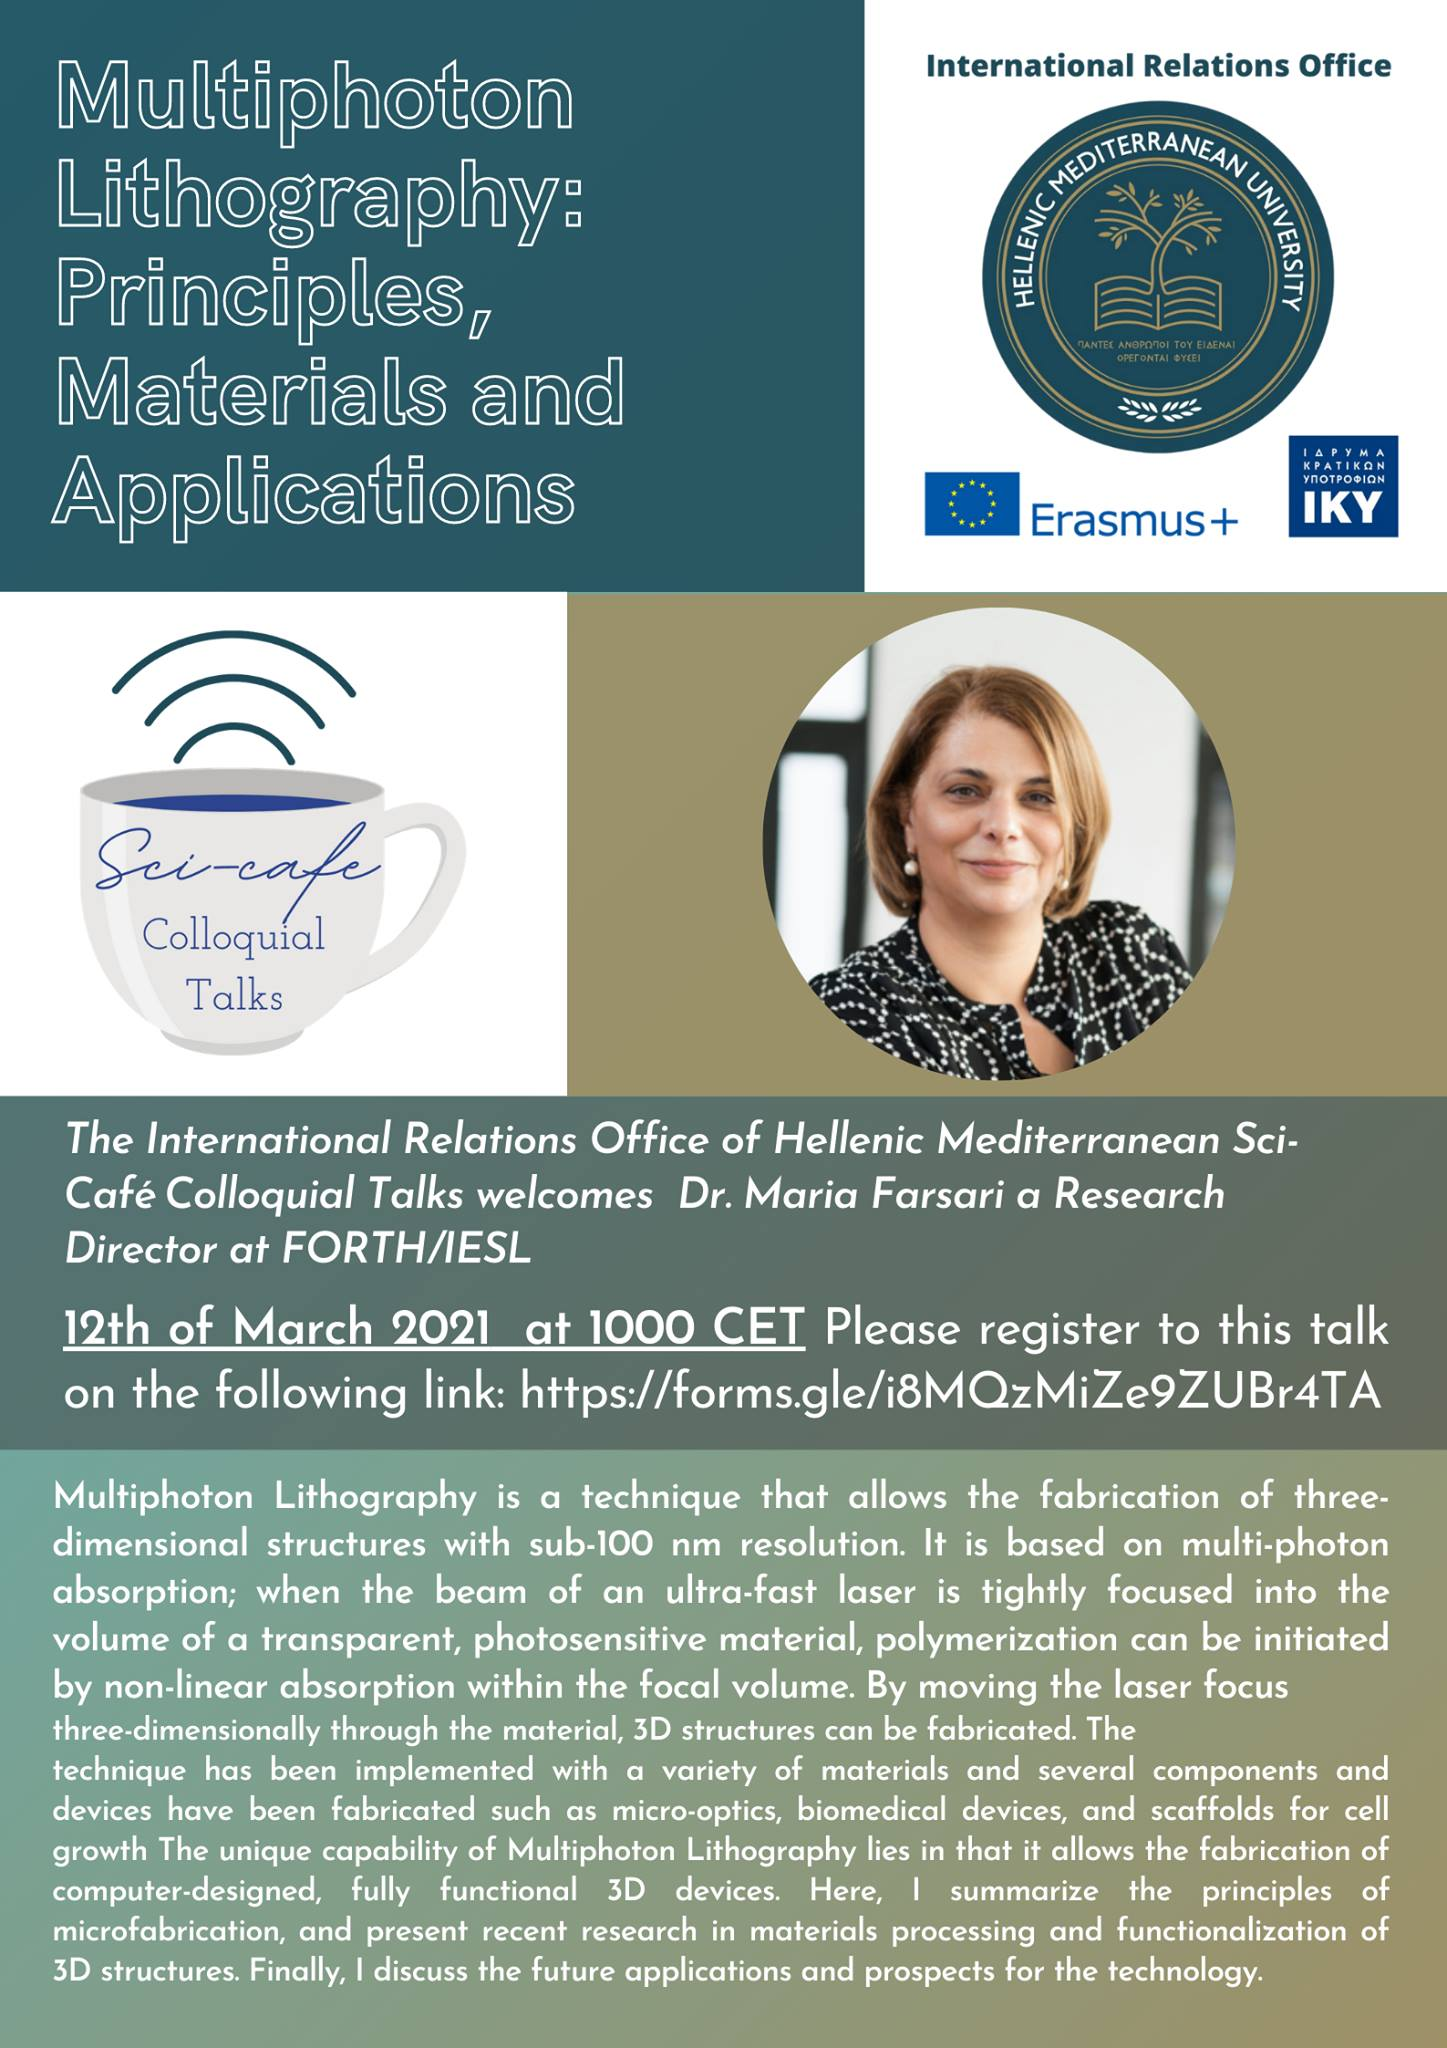 Sci- Cafe Talk from Dr. Maria Farsari  (Research Director at FORTH/IESL and the leader of the NLL group), Friday 12th of March 2021